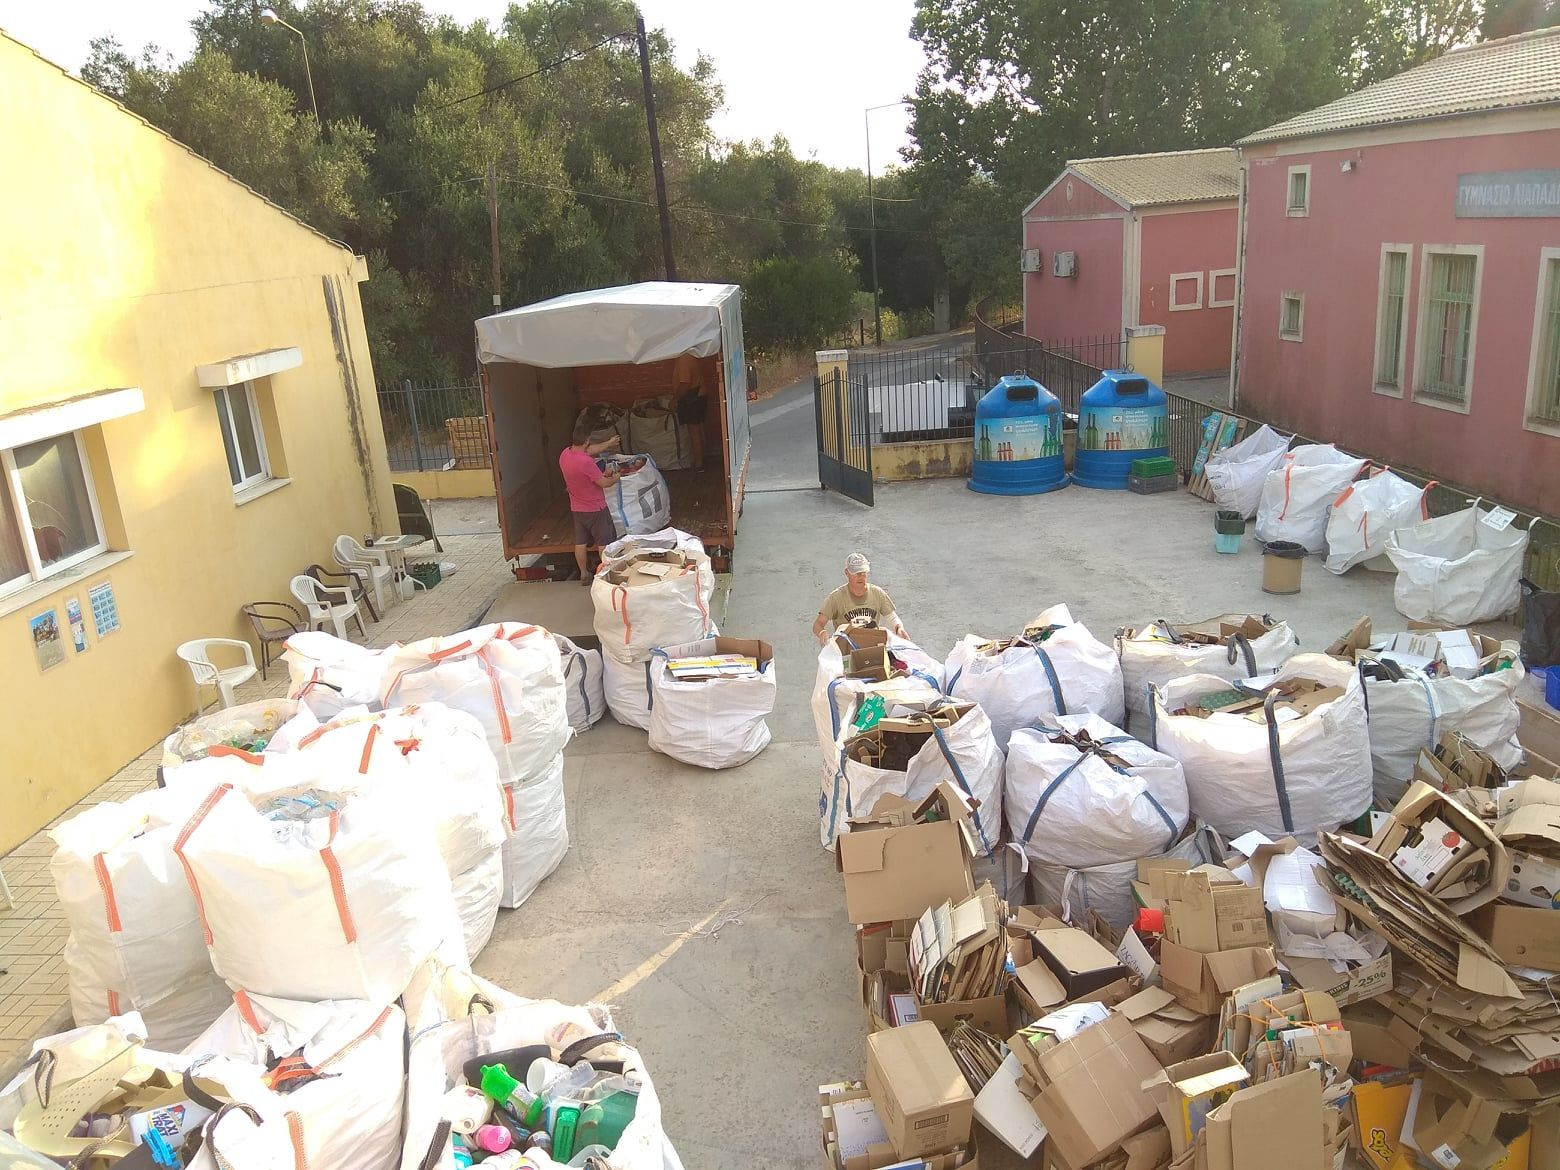 Response from Liapades recycling volunteers to Yiannis Seremetis΄ recent comments